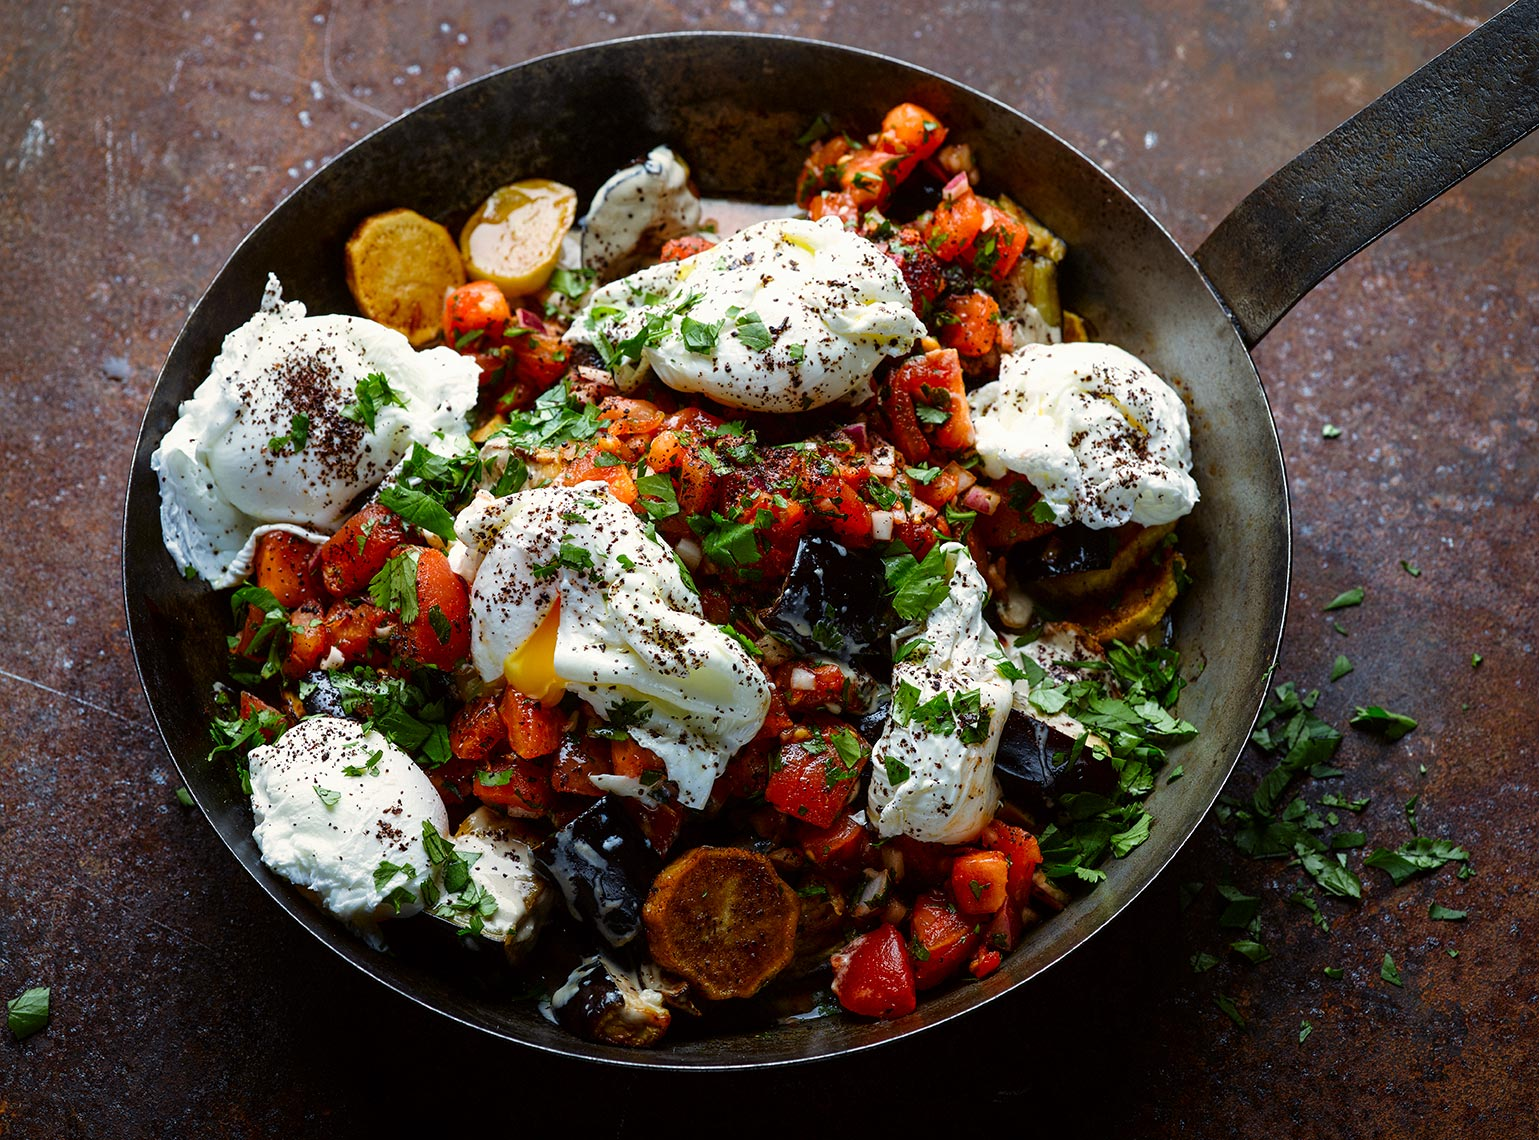 Ottolenghi aubergine potato and tomato | Colin Campbell - Food Photographer